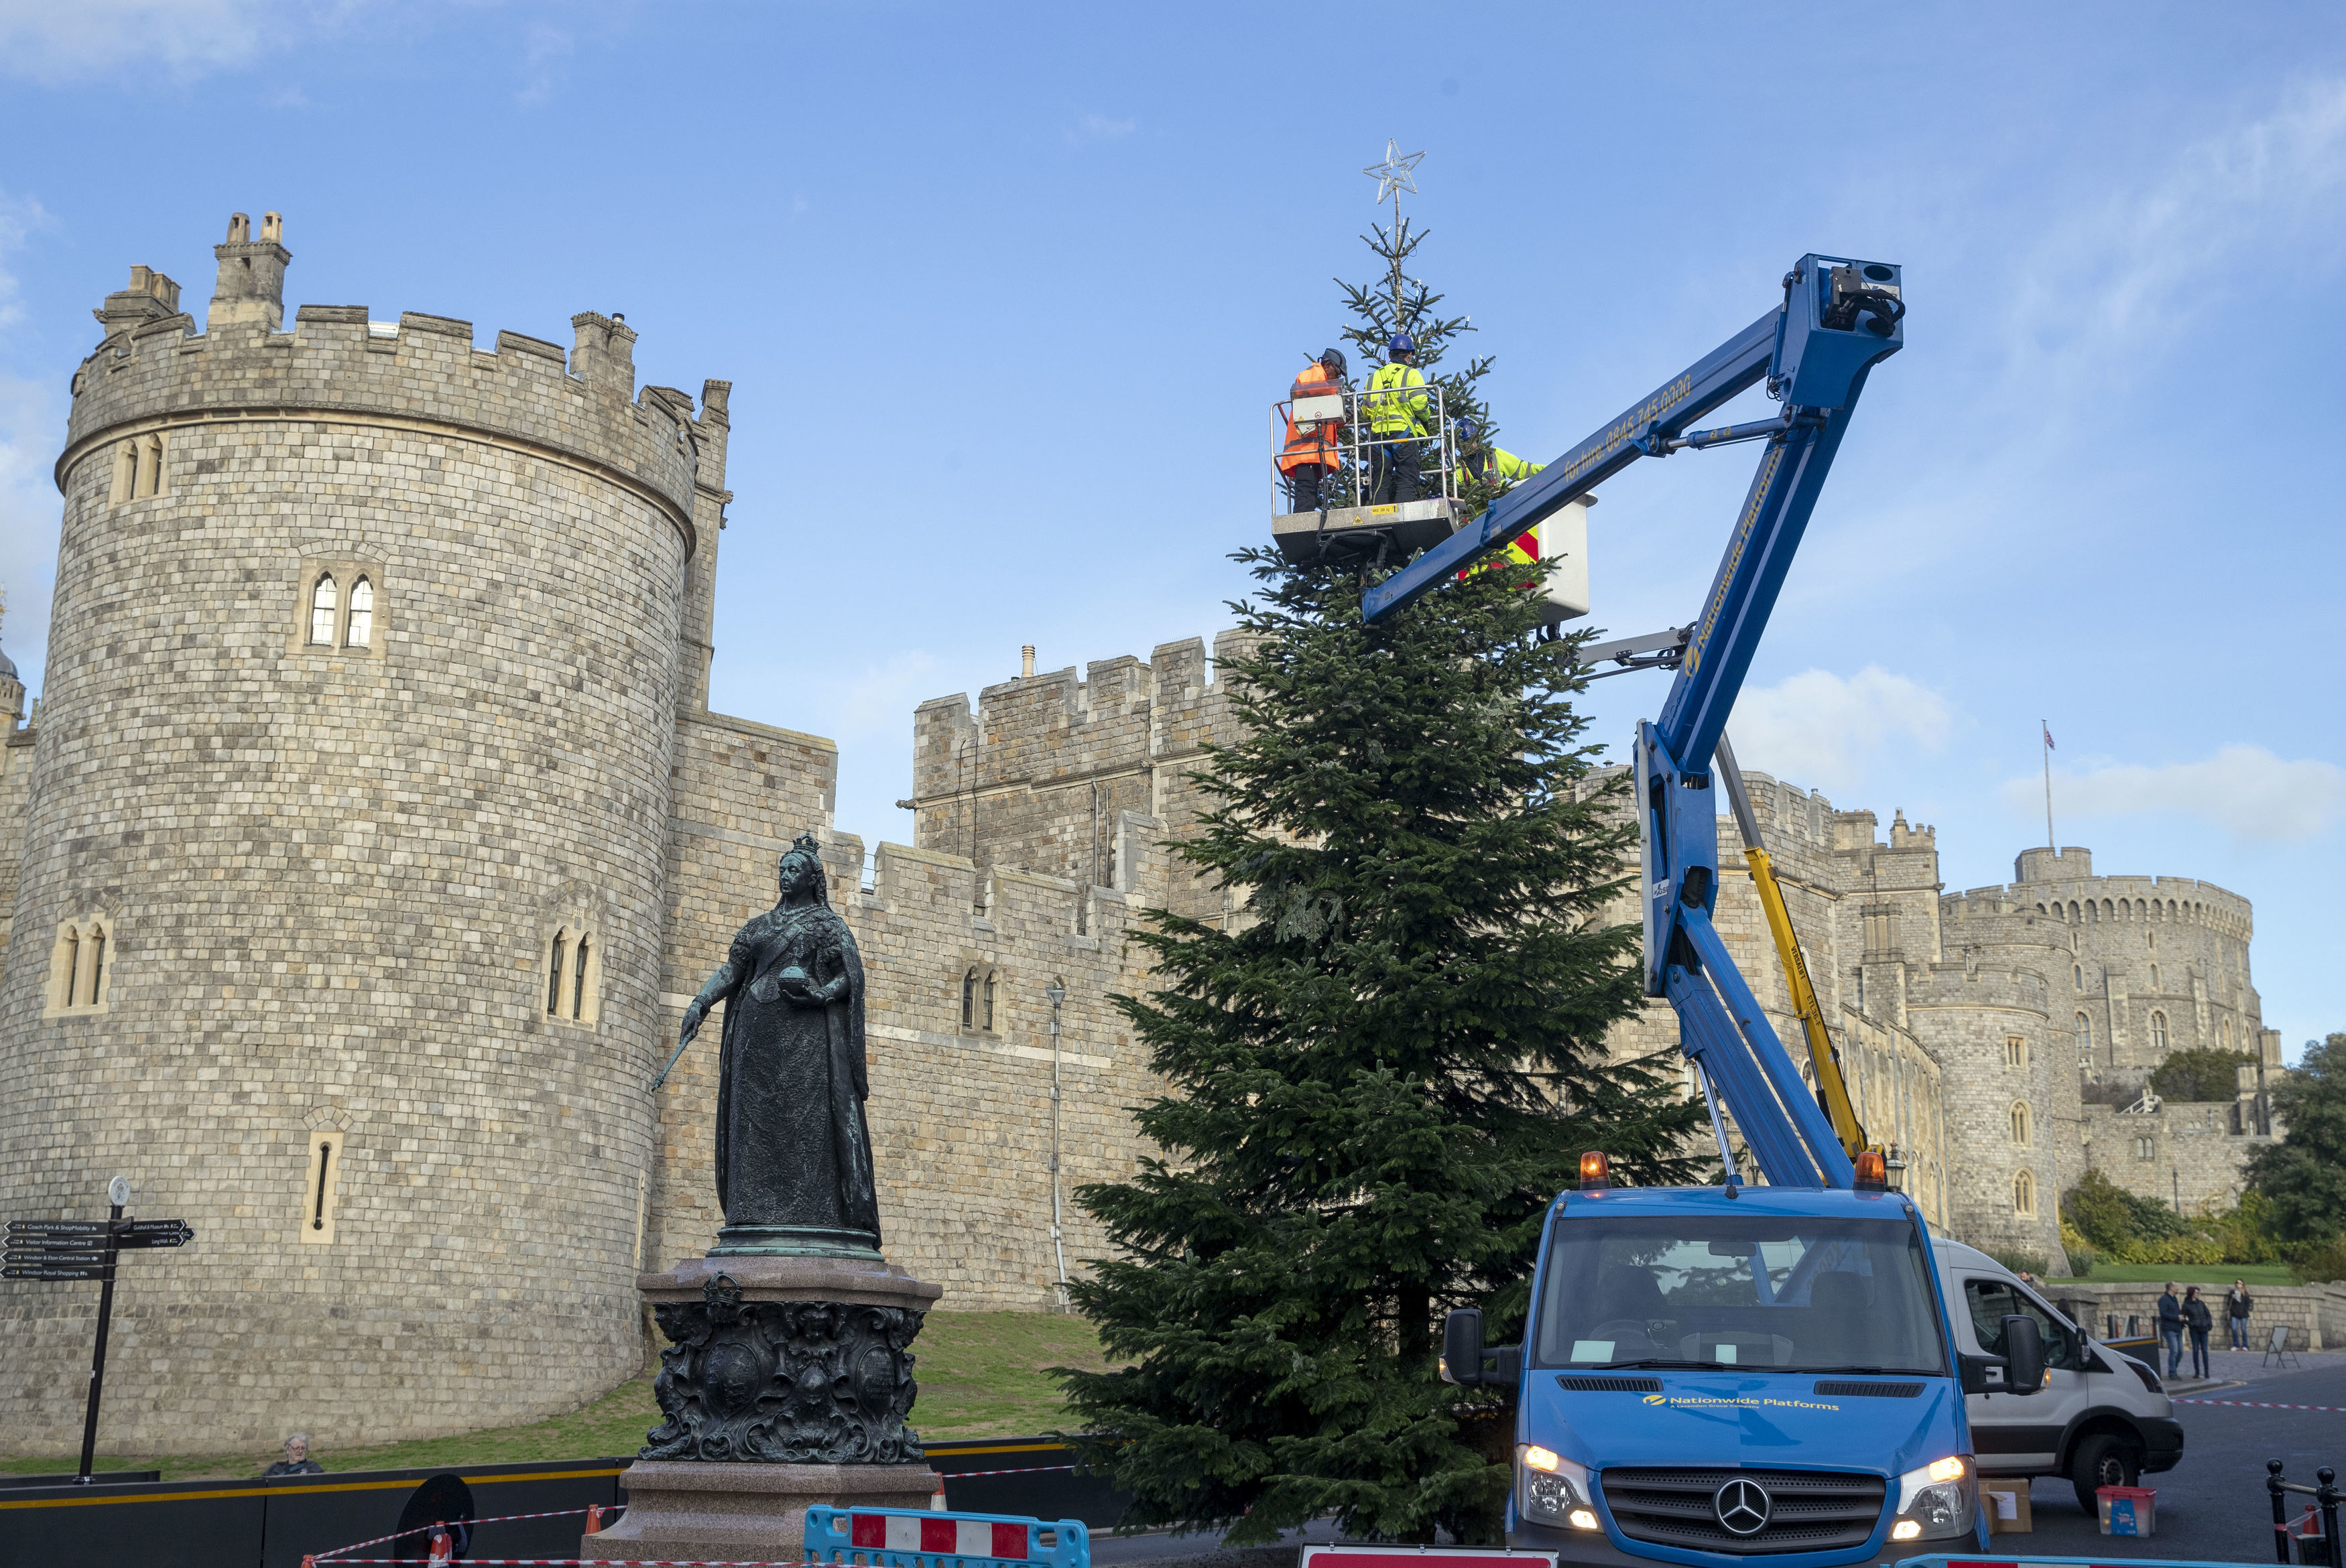 Lights are installed onto the Christmas tree outside Windsor Castle, Berkshire, ahead of the Christmas Lights Switch on and Lantern Procession on November 17, by Staff from Lamps and Tubes illuminations Ltd working for the Royal Borough of Windsor and Maidenhead. (Photo by Steve Parsons/PA Images via Getty Images)